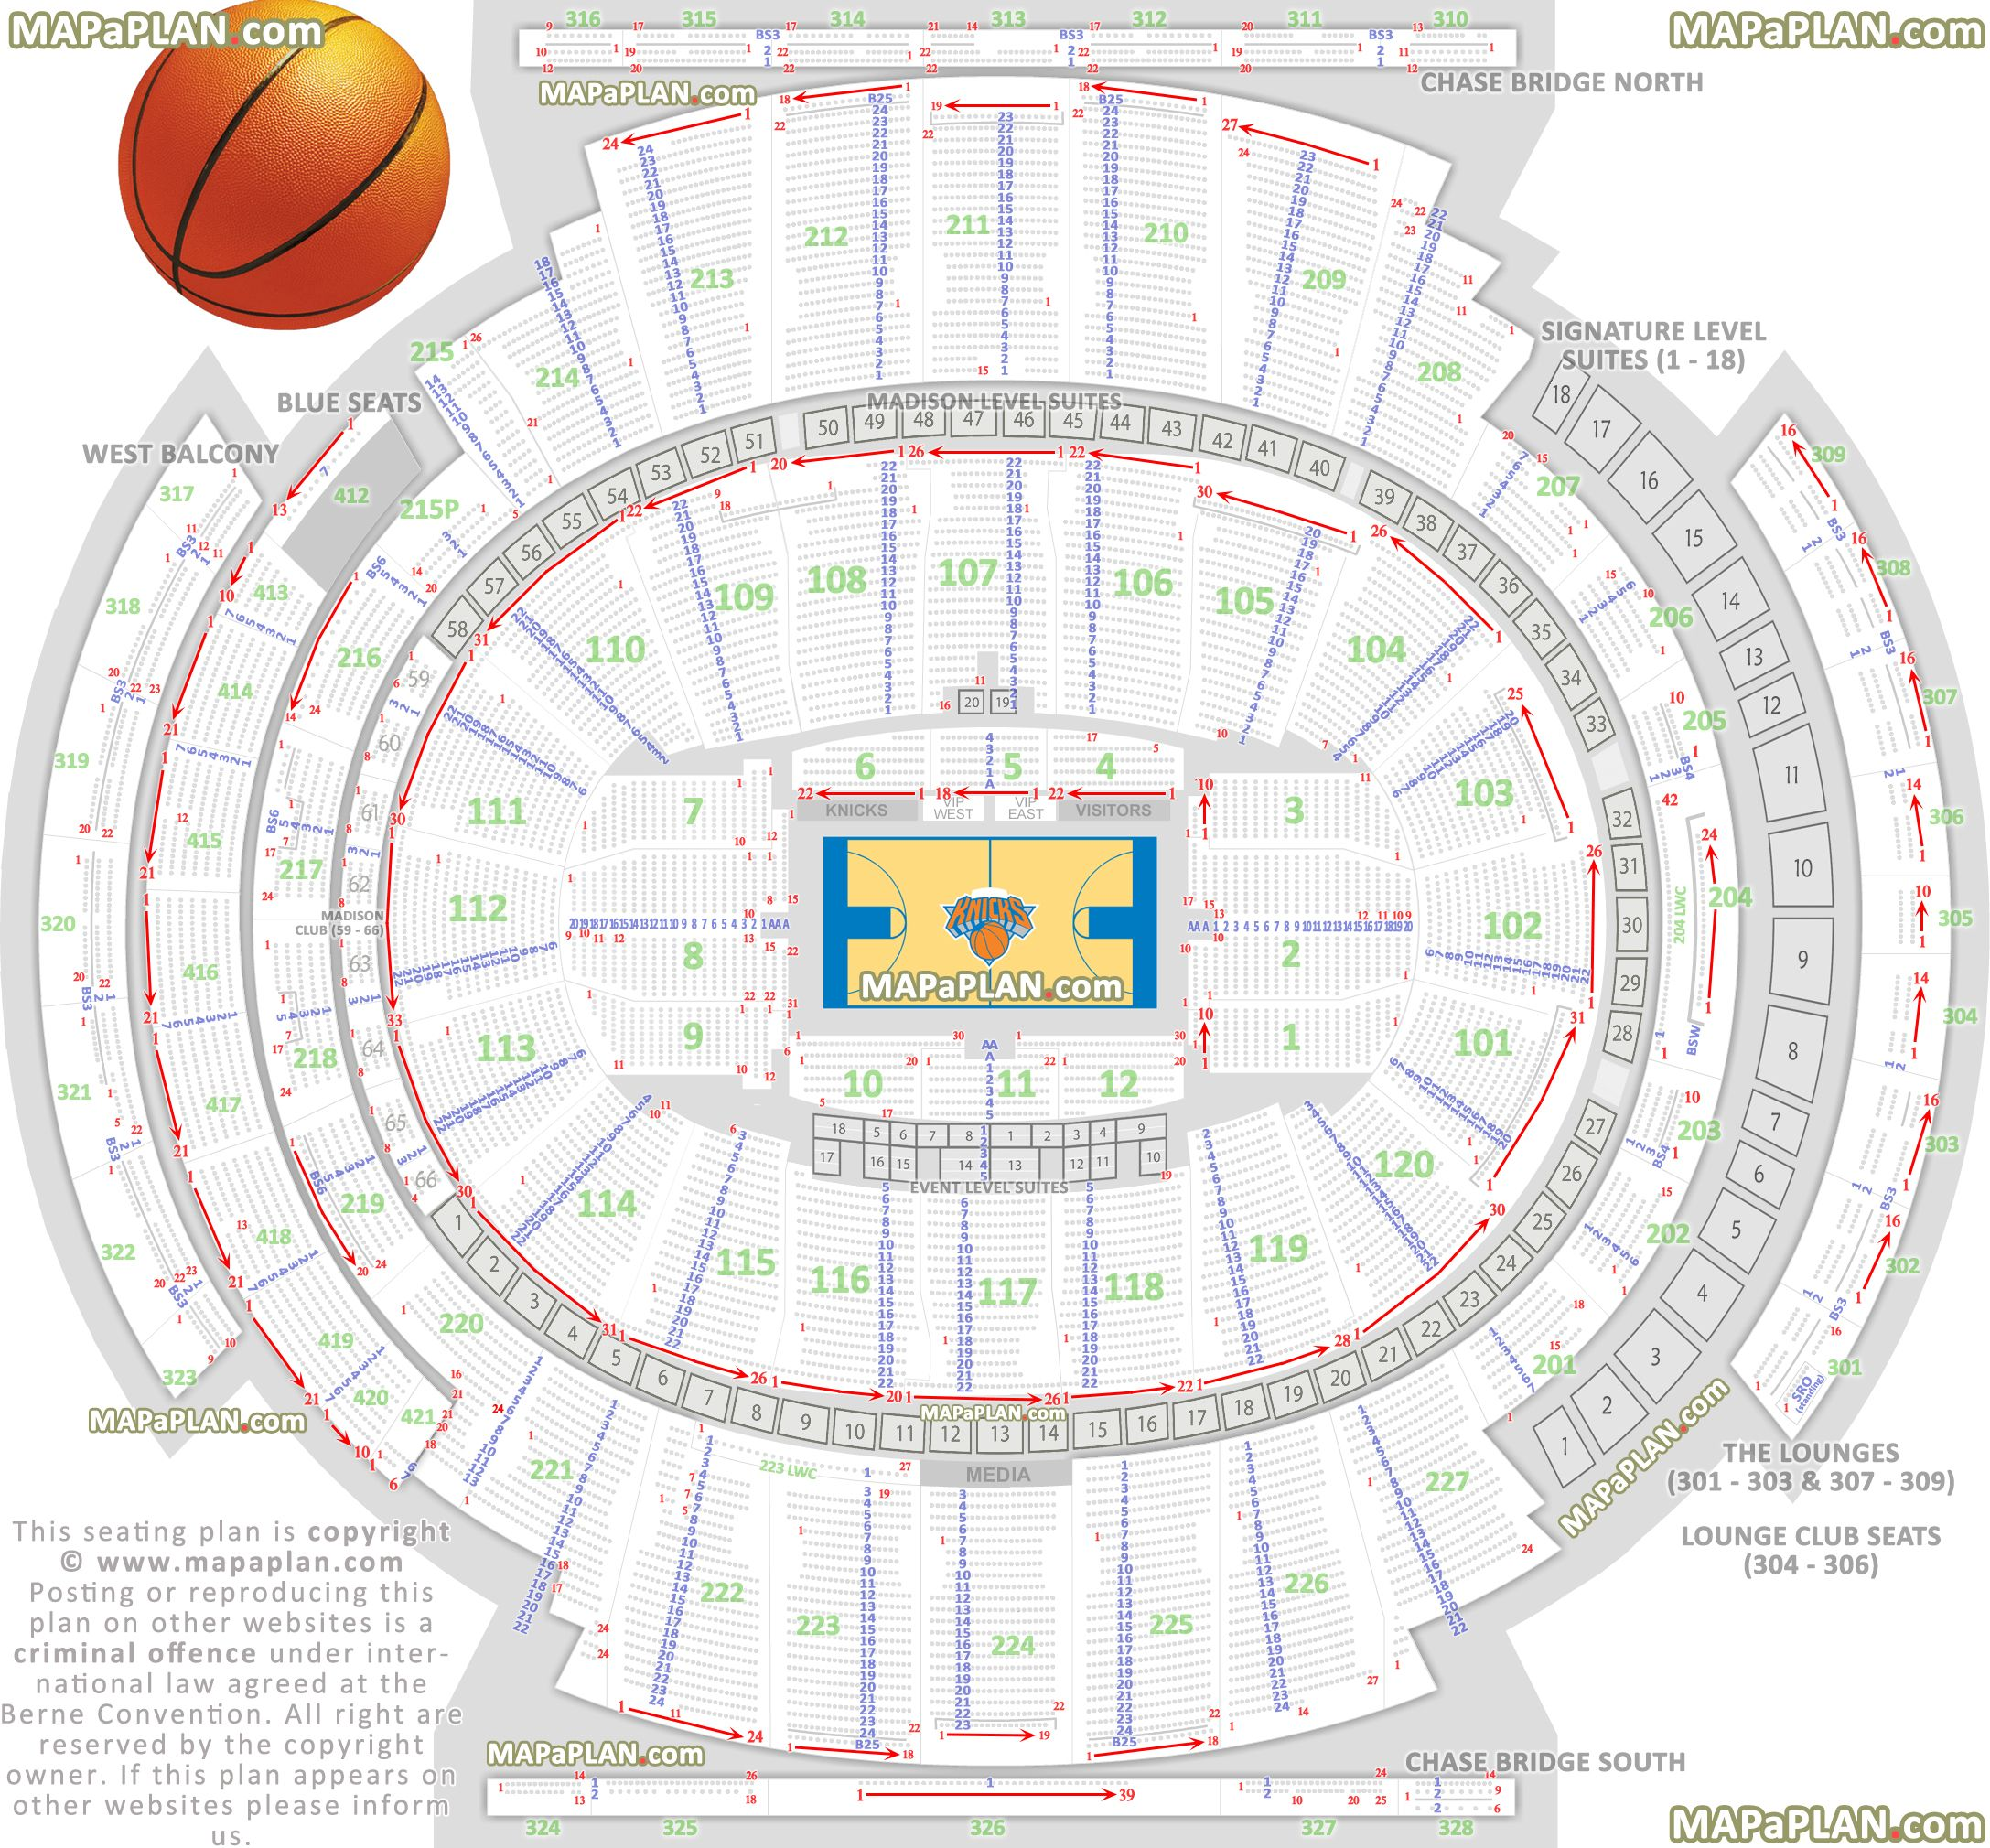 Madison square garden seating chart Concert general admission floor standing Madison Square Garden seating chart Pinterest